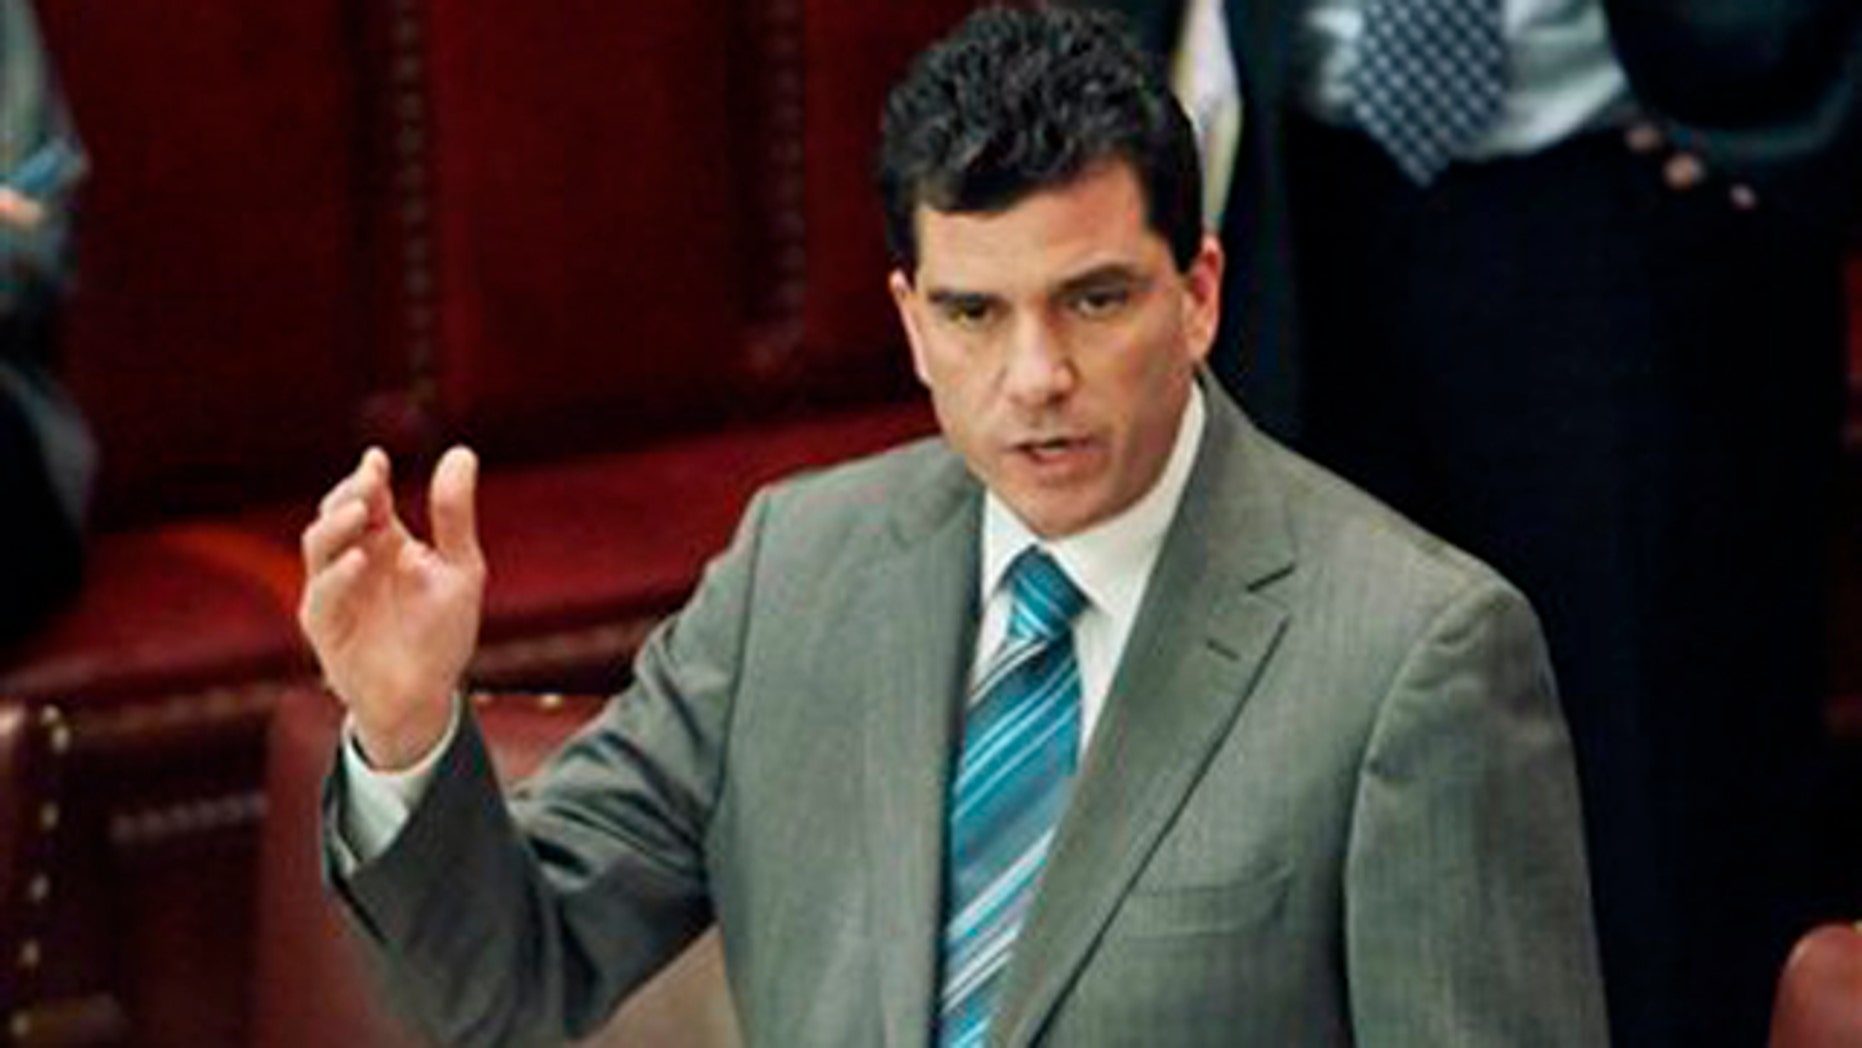 March 2, 2011:  Sen. Mark Grisanti, R-Buffalo, speaks in the Senate Chamber at the Capitol in Albany, N.Y.